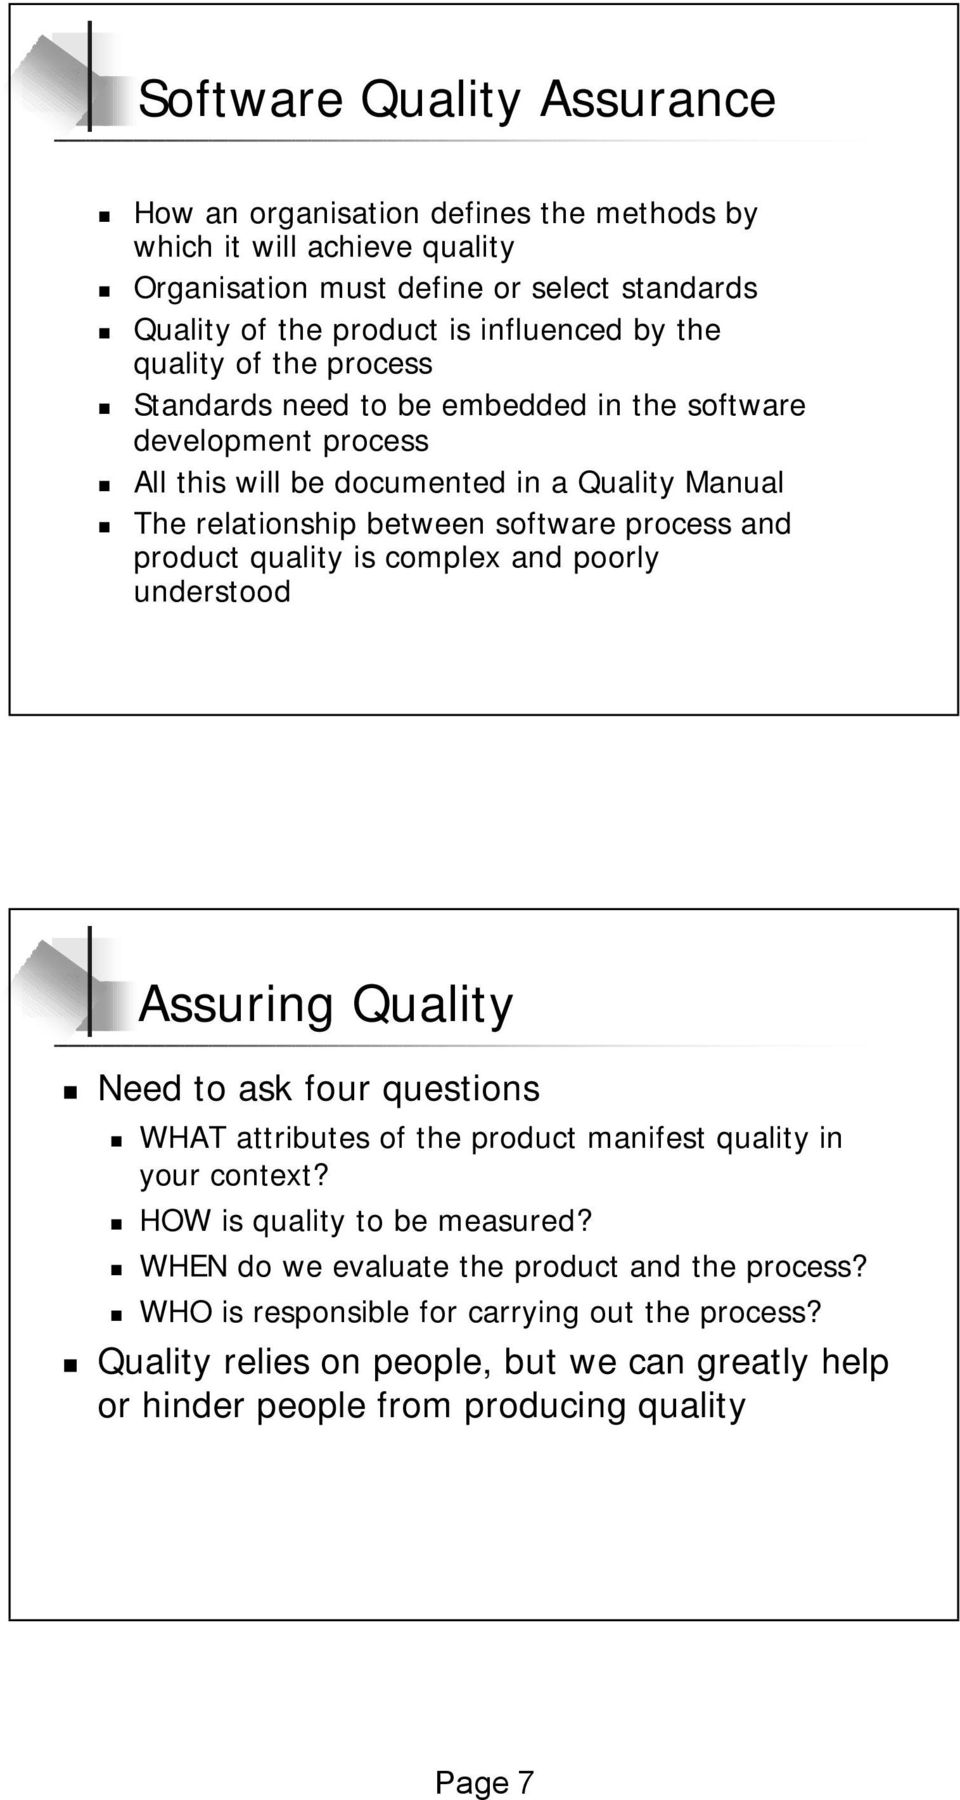 product quality is complex and poorly understood Assuring Quality Need to ask four questions WHAT attributes of the product manifest quality in your context? HOW is quality to be measured?